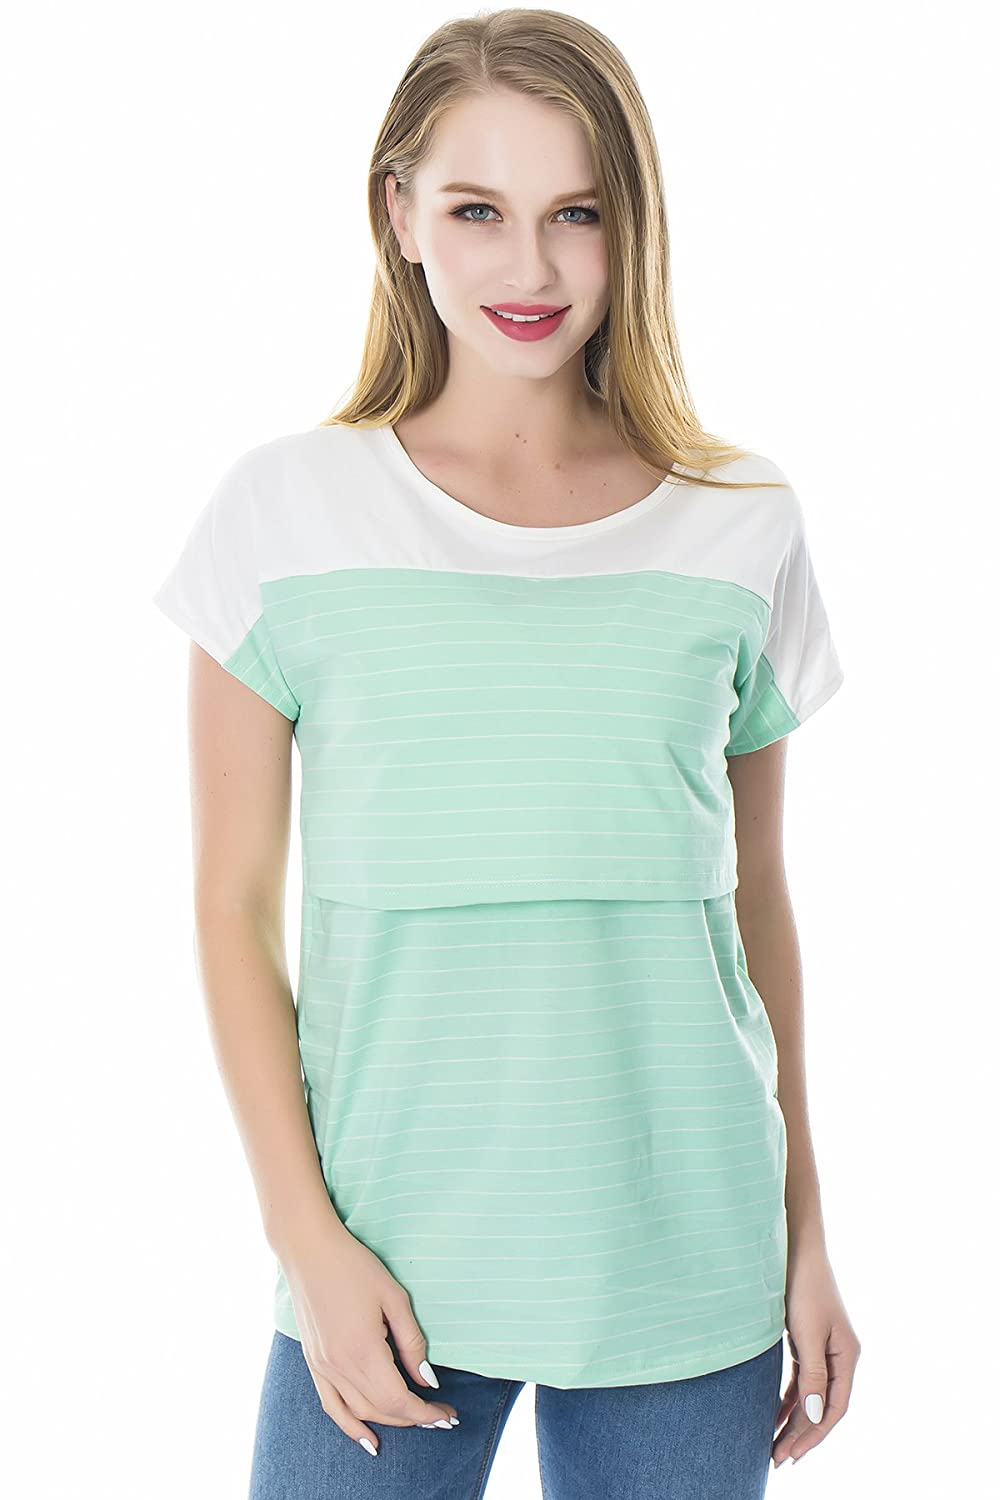 cef7c35a4a3 Online Cheap wholesale Smallshow Womens Maternity Nursing Tops Striped Breastfeeding  T-Shirt Knits & Tees Suppliers